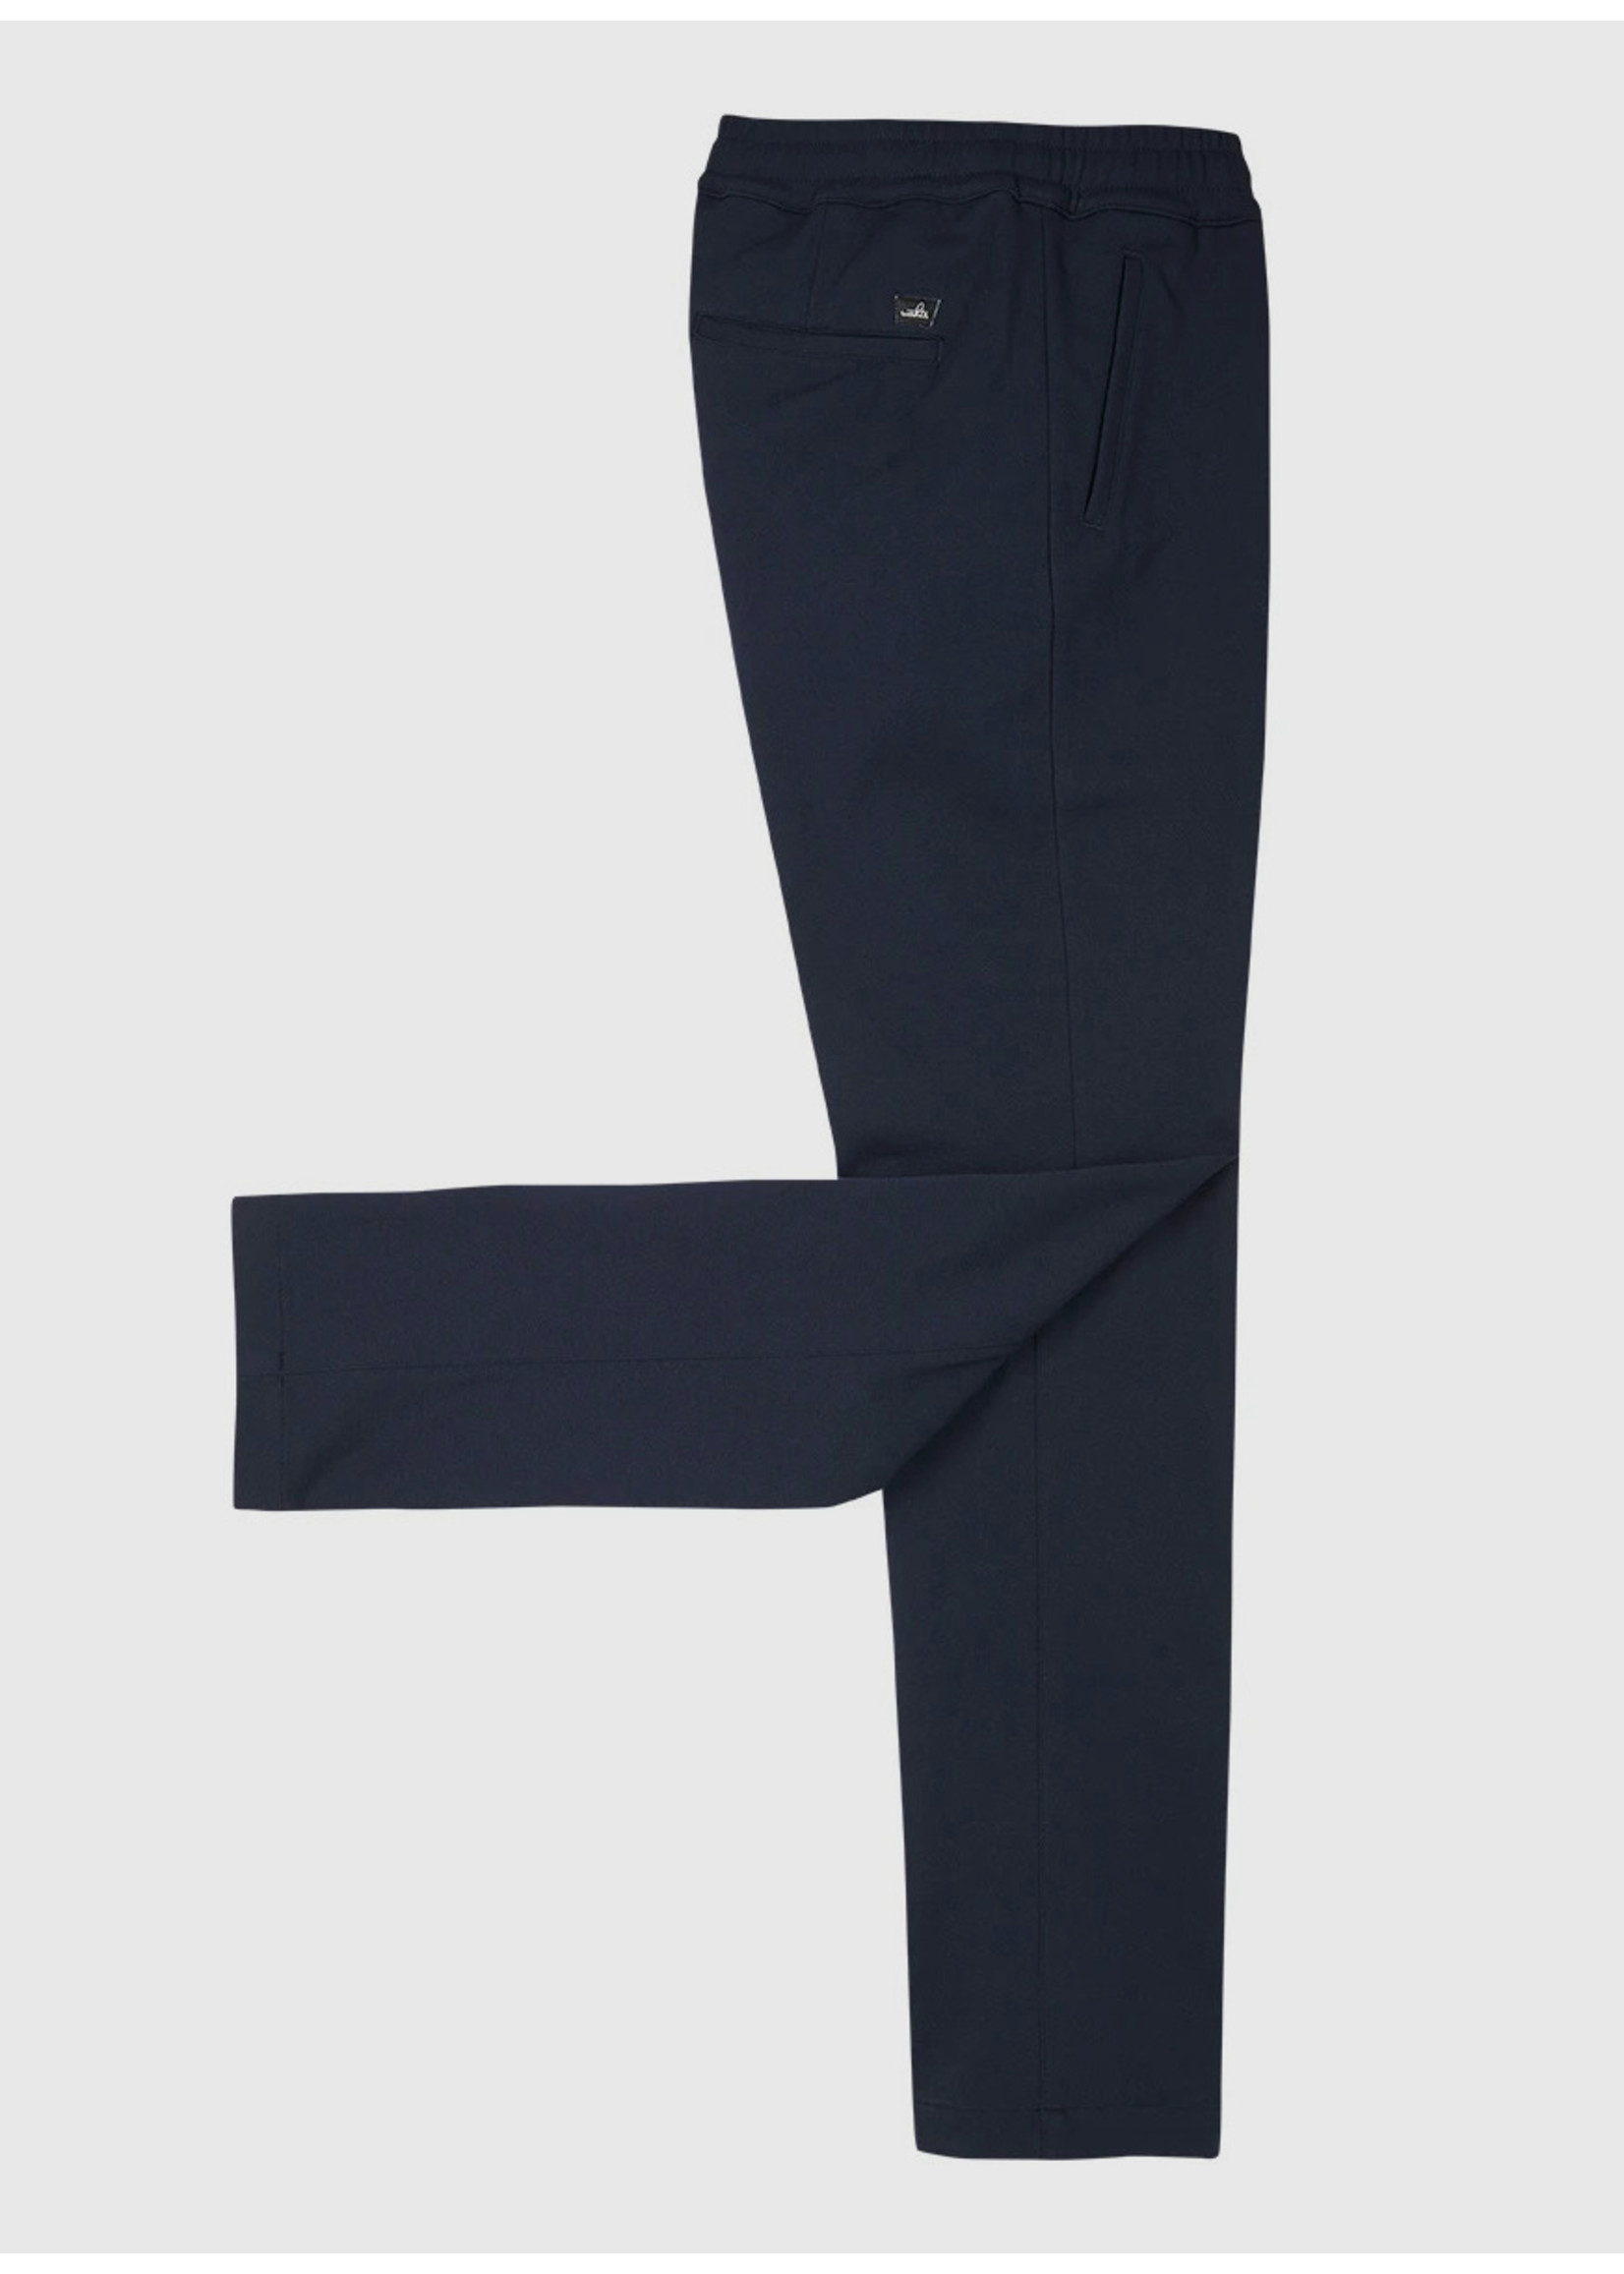 Wahts Jades comfort trousers navy blue